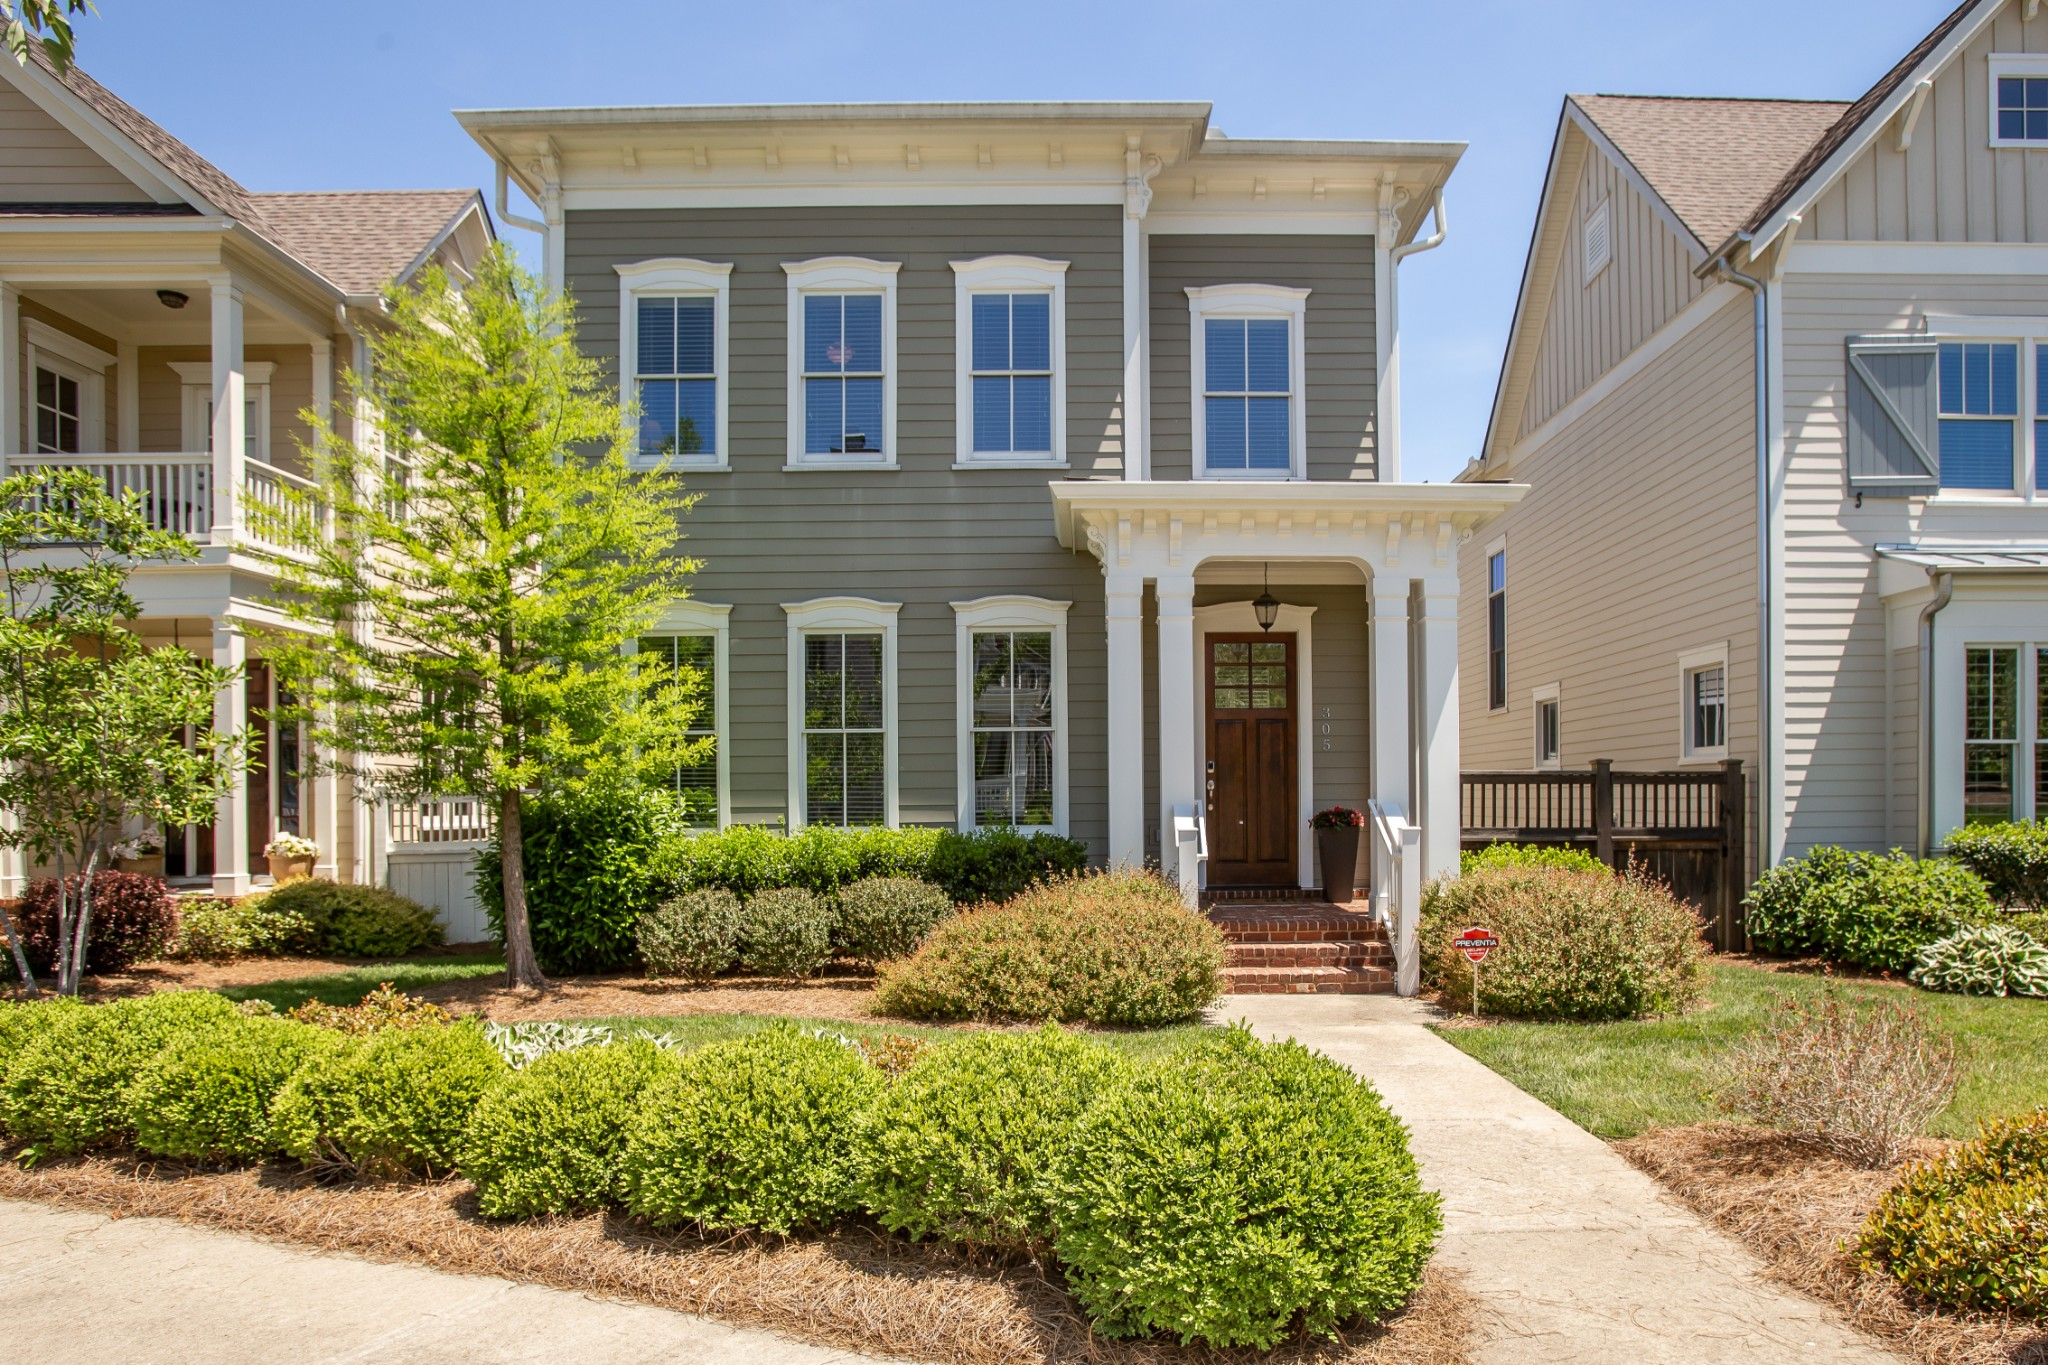 305 Walter Roberts St Property Photo - Franklin, TN real estate listing